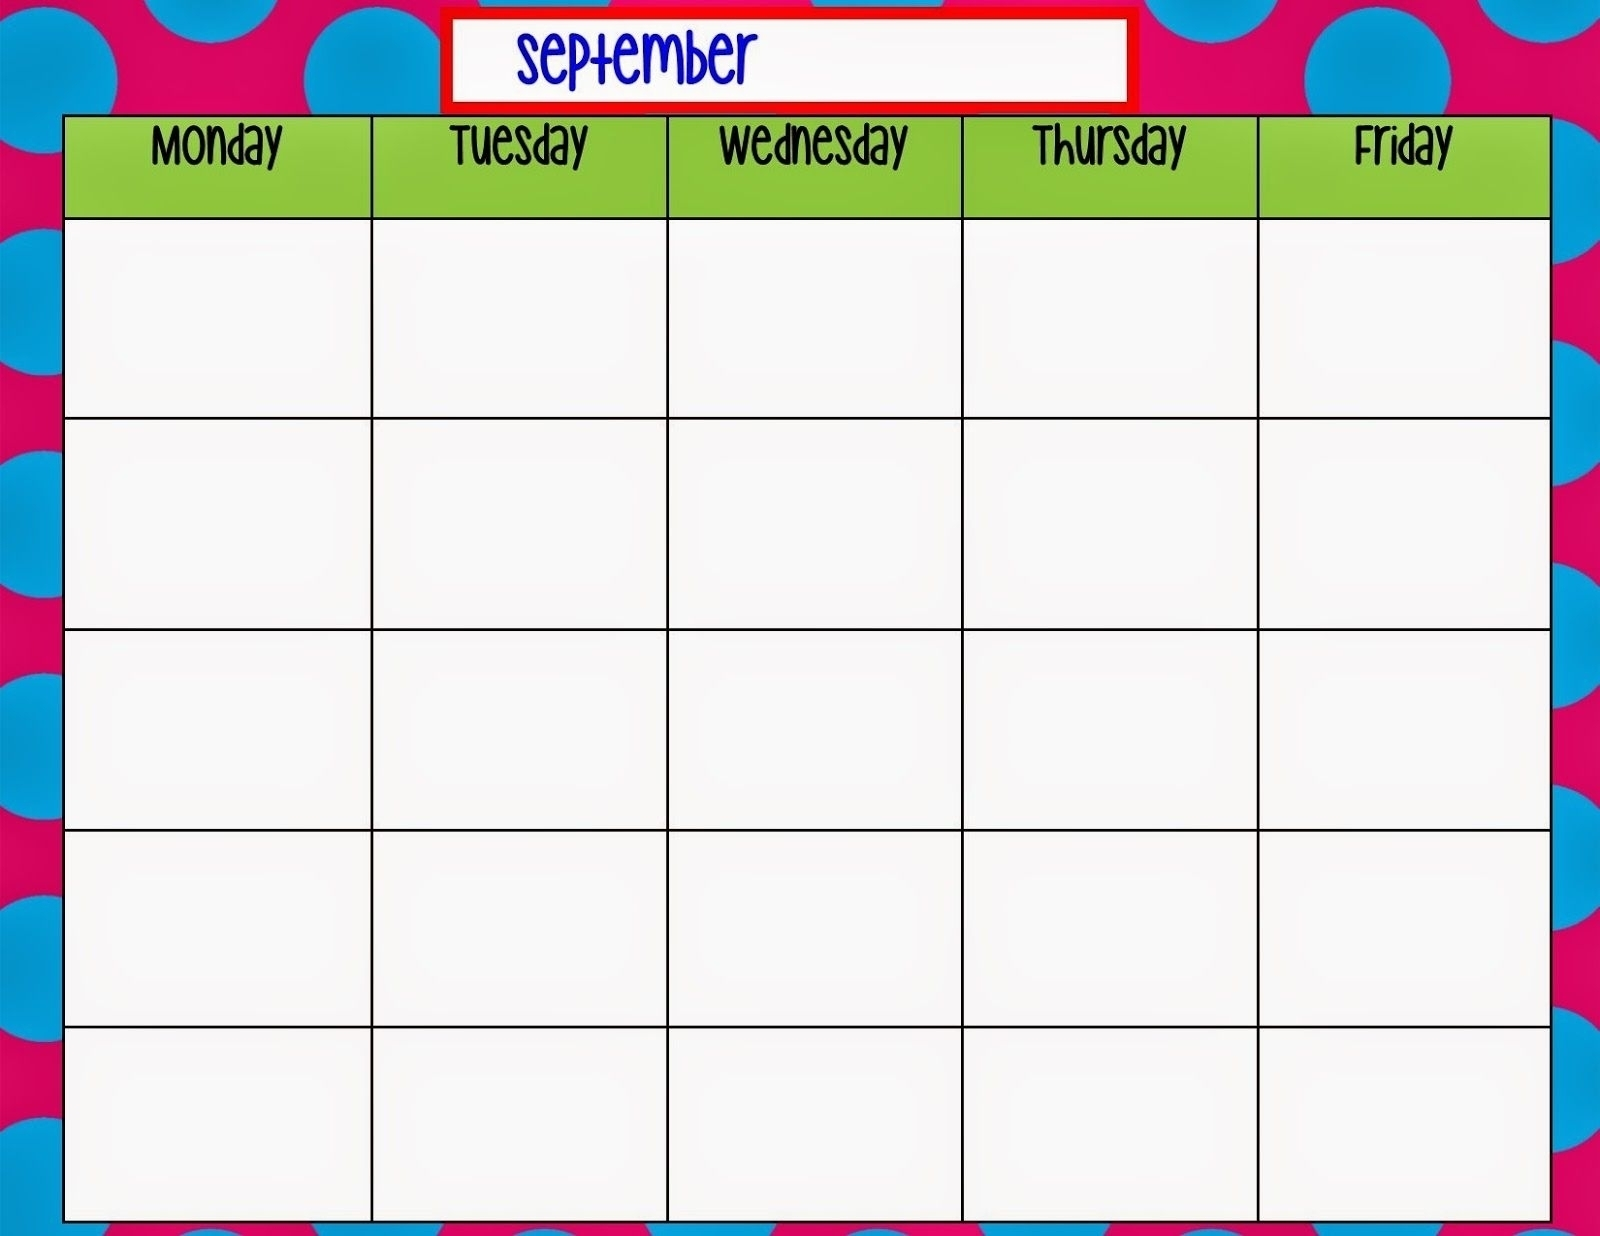 Monday To Friday Schedule Template | Template Calendar Printable for Monday To Friday Schedule Template